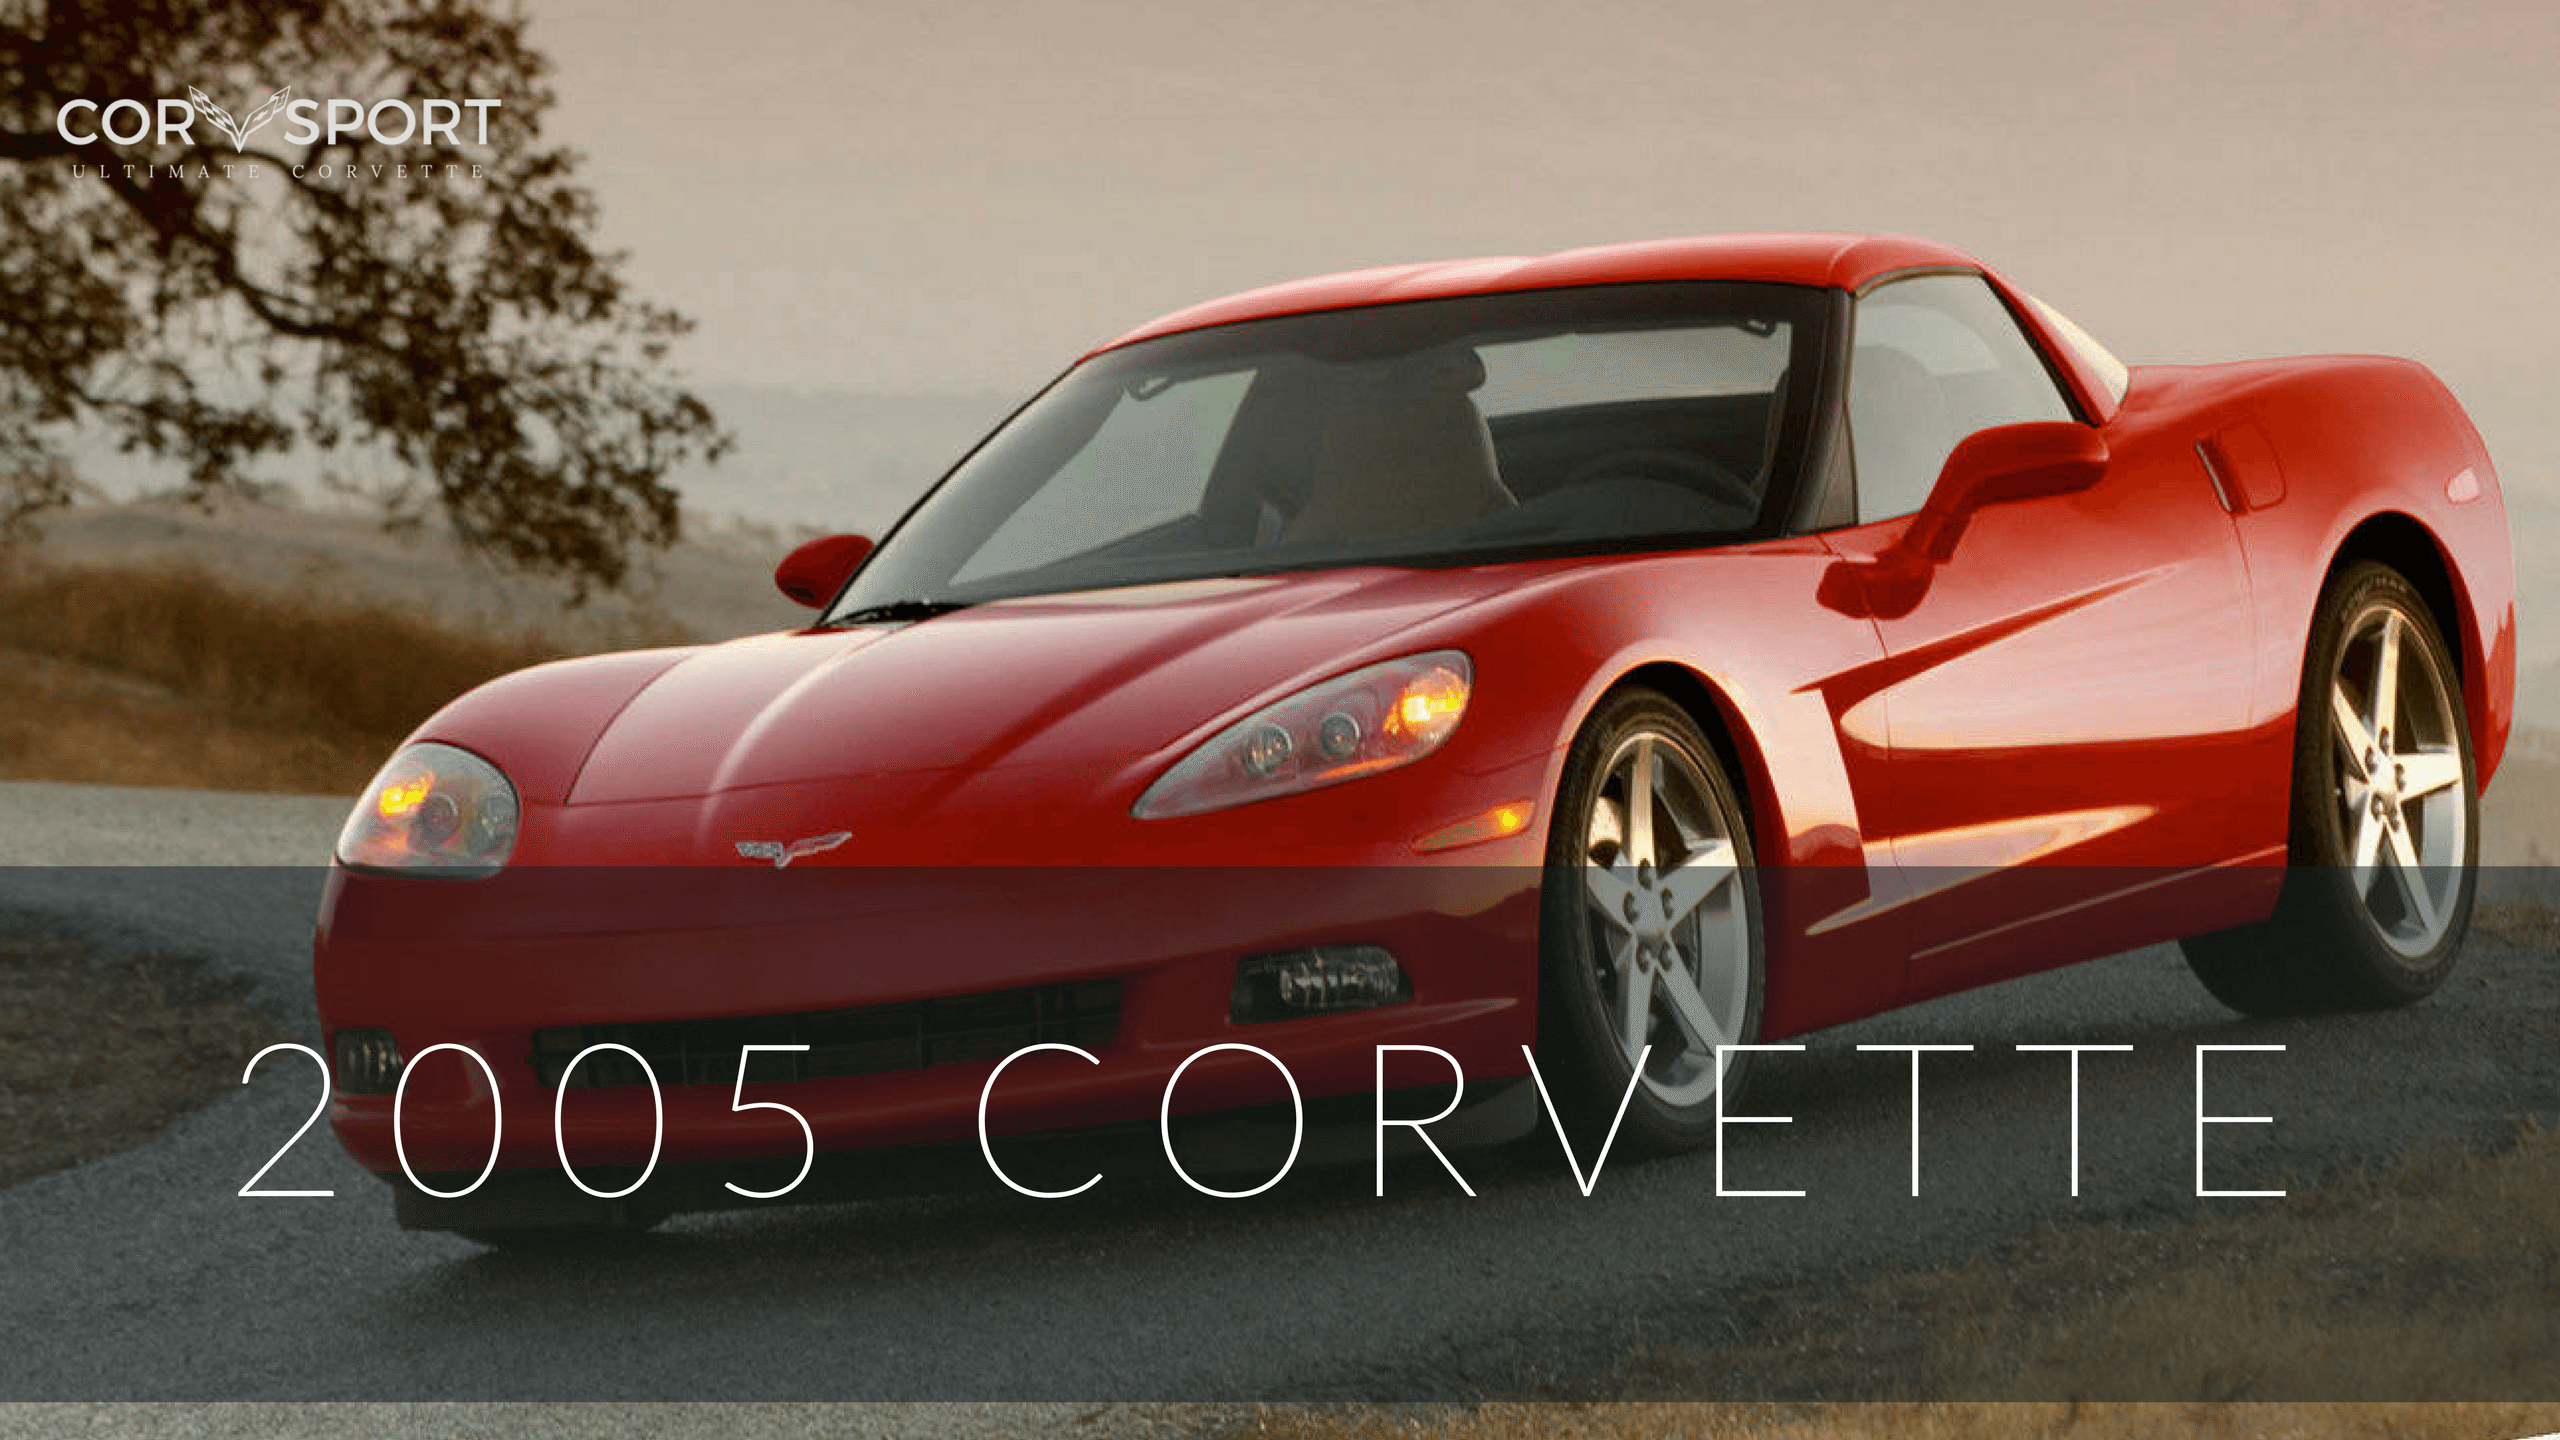 2005 c6 corvette ultimate guide overview specs vin info rh corvsport com